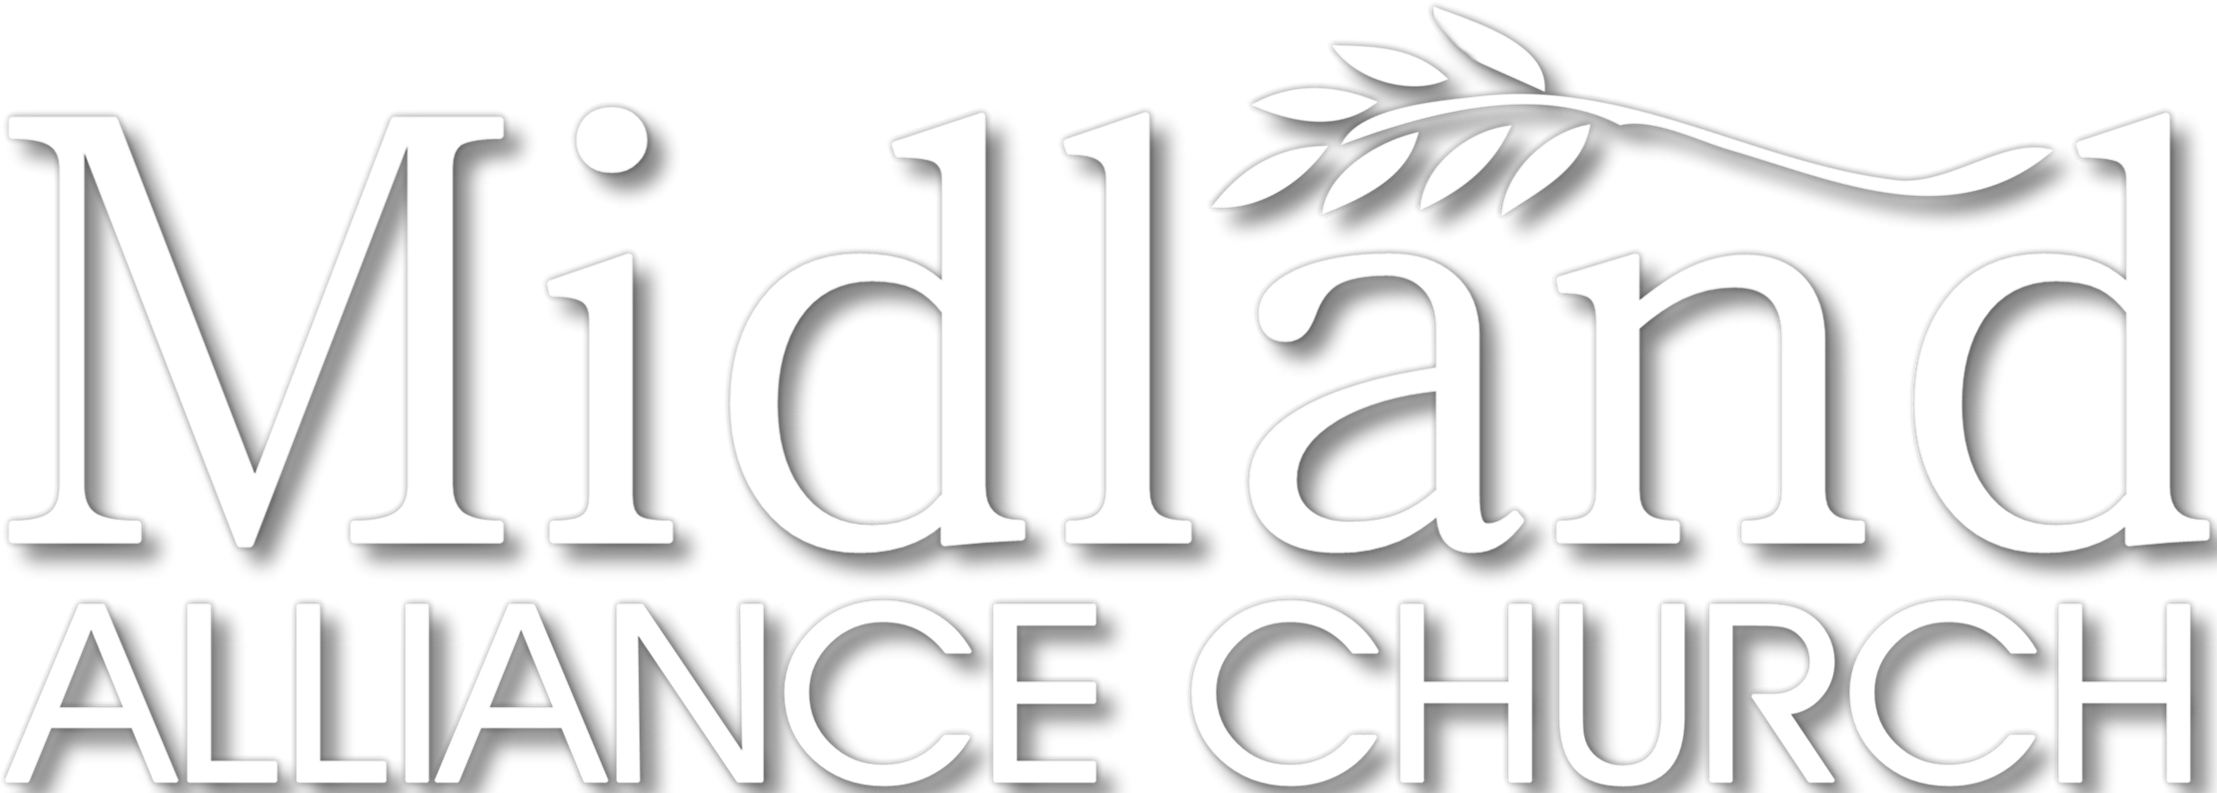 Midland Alliance Church